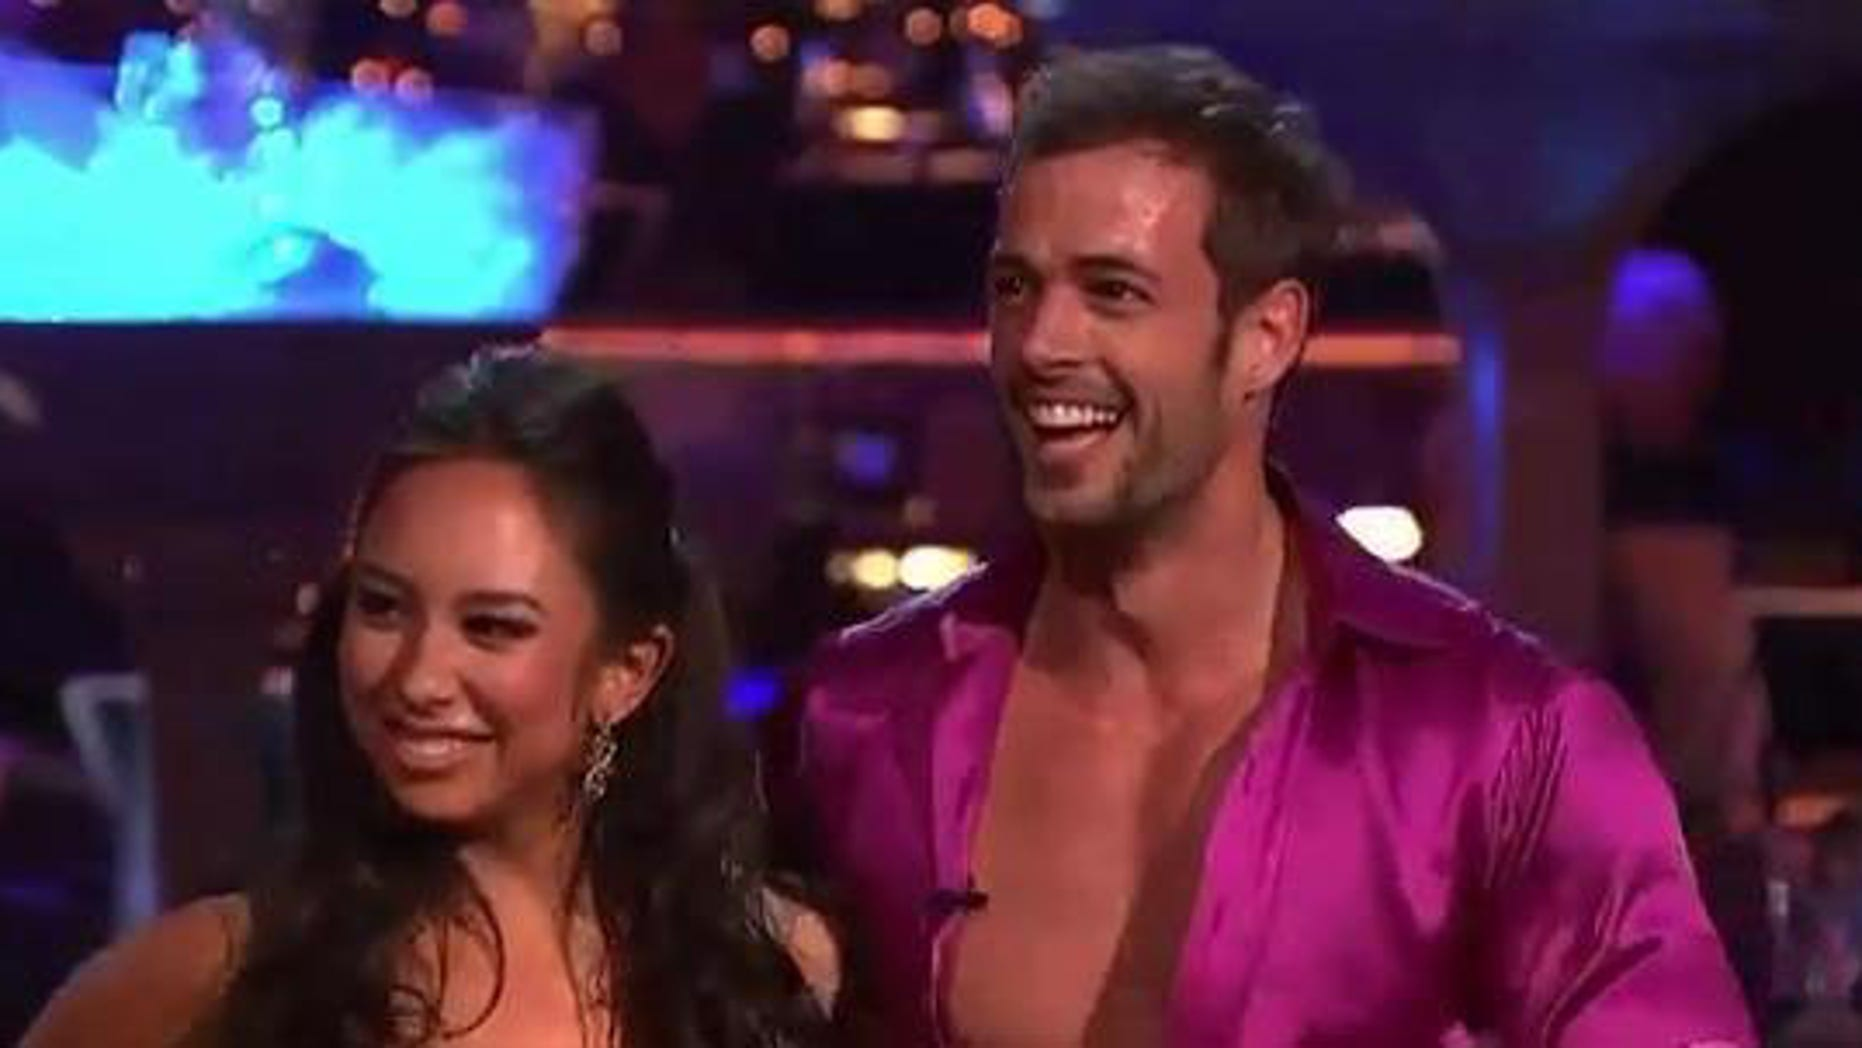 """May 21, 2012: William Levy and dance partner Cheryl Burke receive a perfect score of 30 (out of 30) points after performing their cha-cha routine to Pink's upbeat song """"Raise Your Glass,"""" Monday night."""